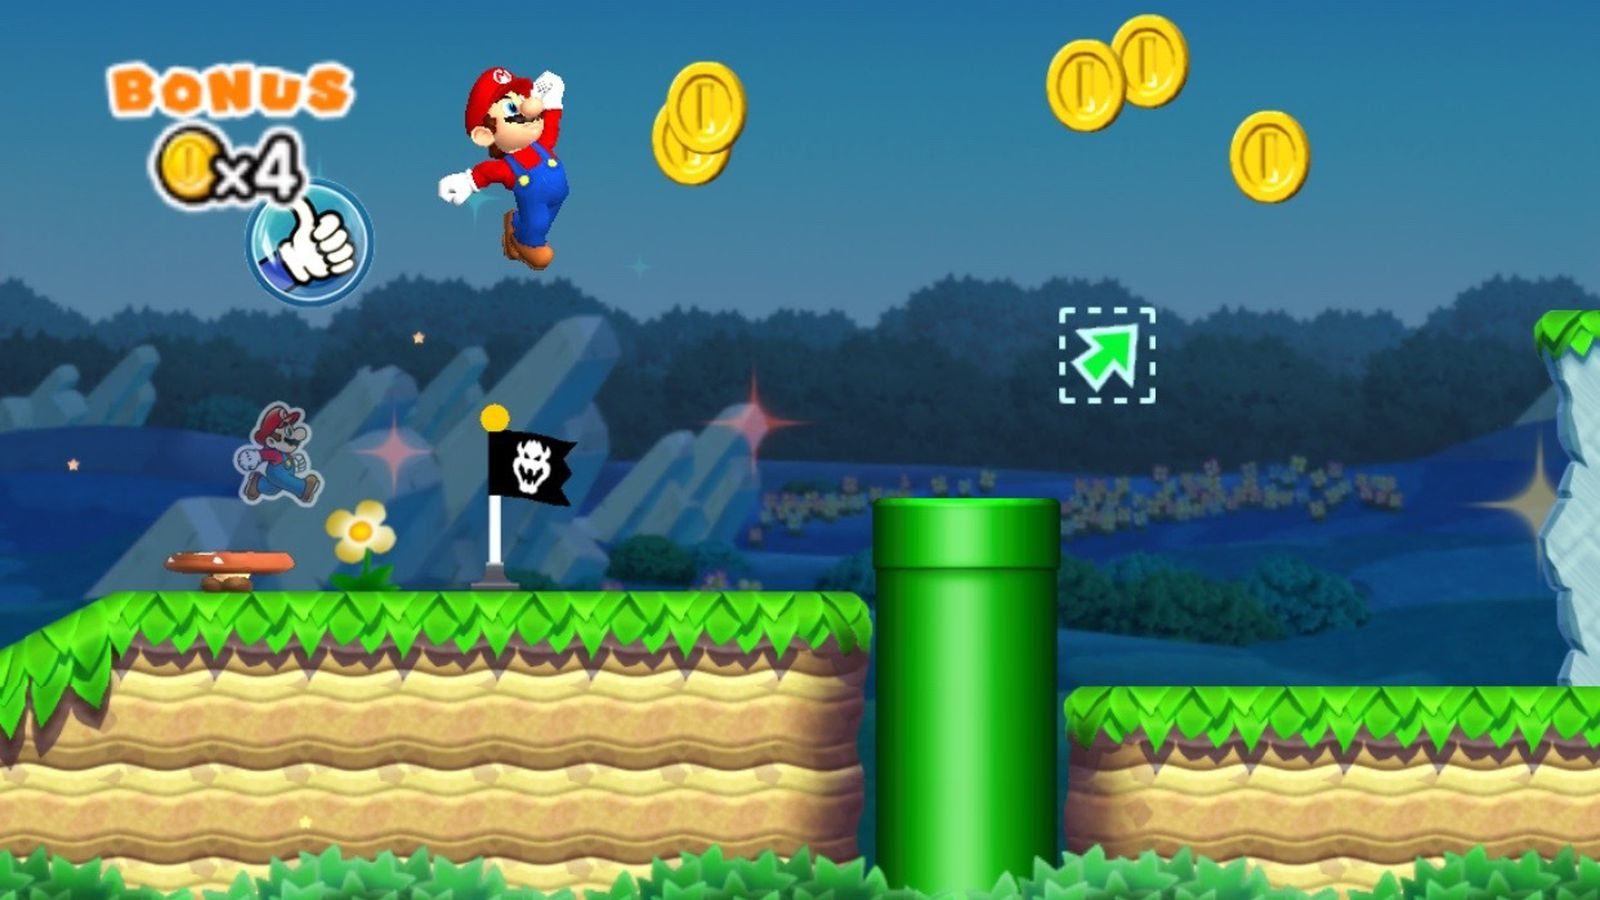 http://blogs-images.forbes.com/erikkain/files/2016/12/super-mario-run.jpg